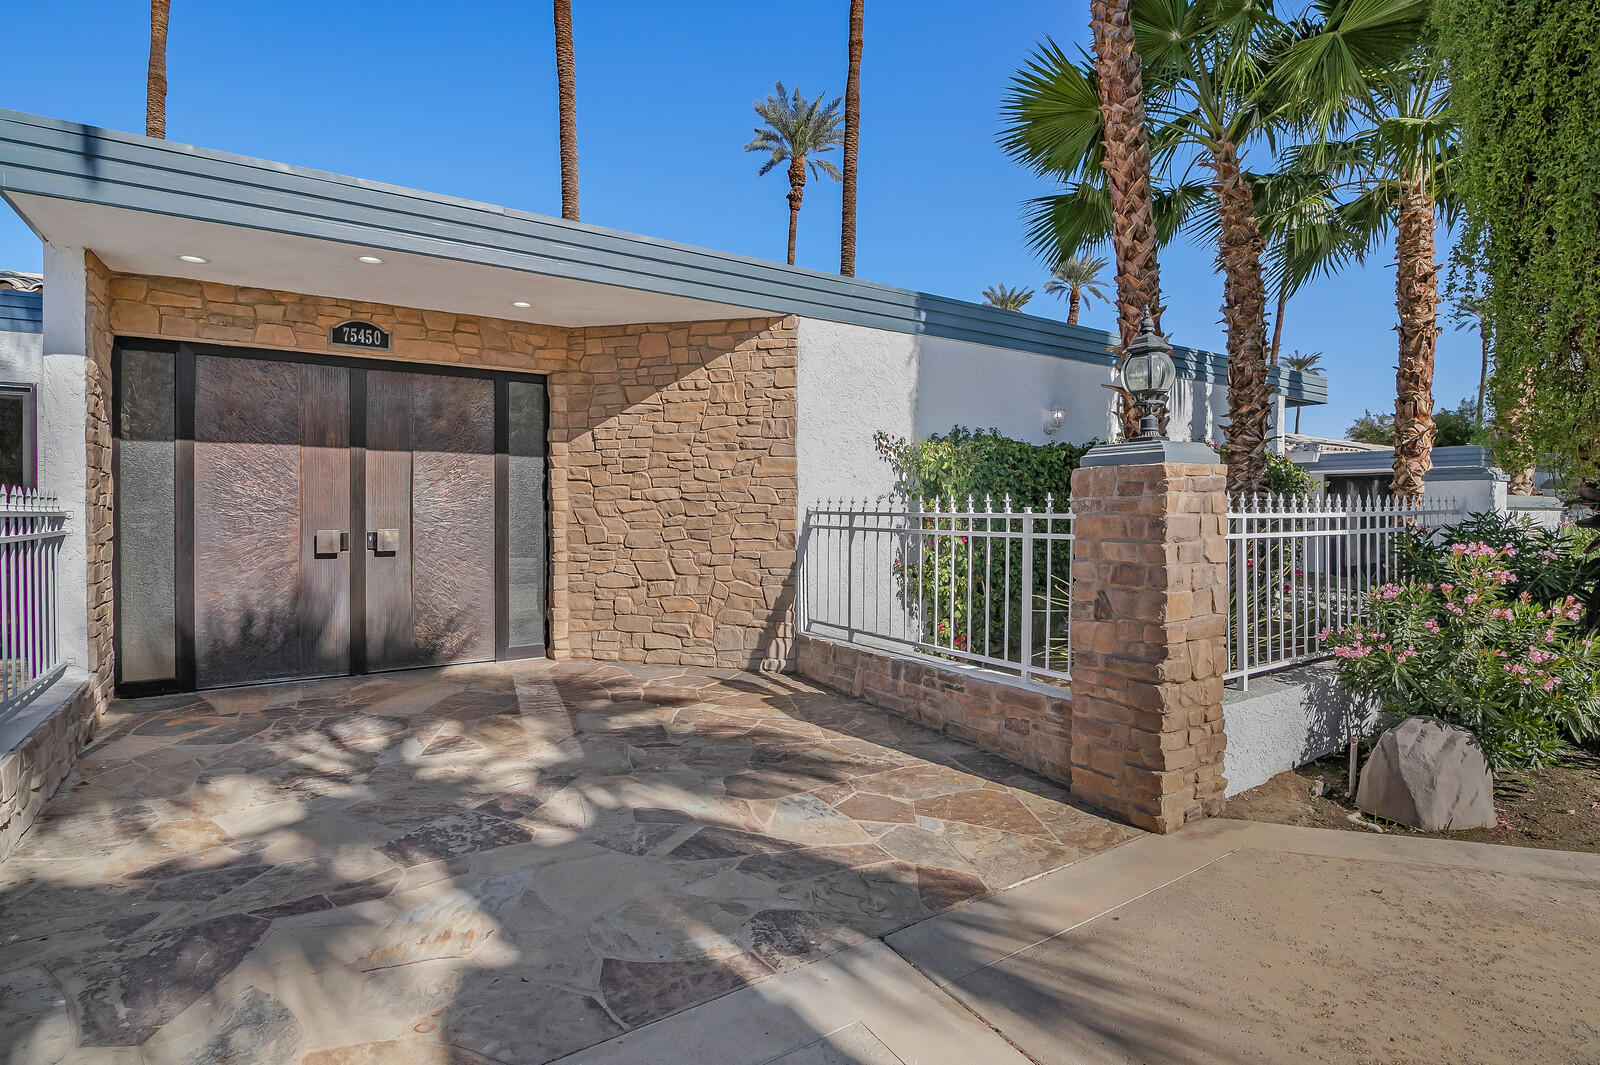 Photo of 75450 Fairway Drive, Indian Wells, CA 92210